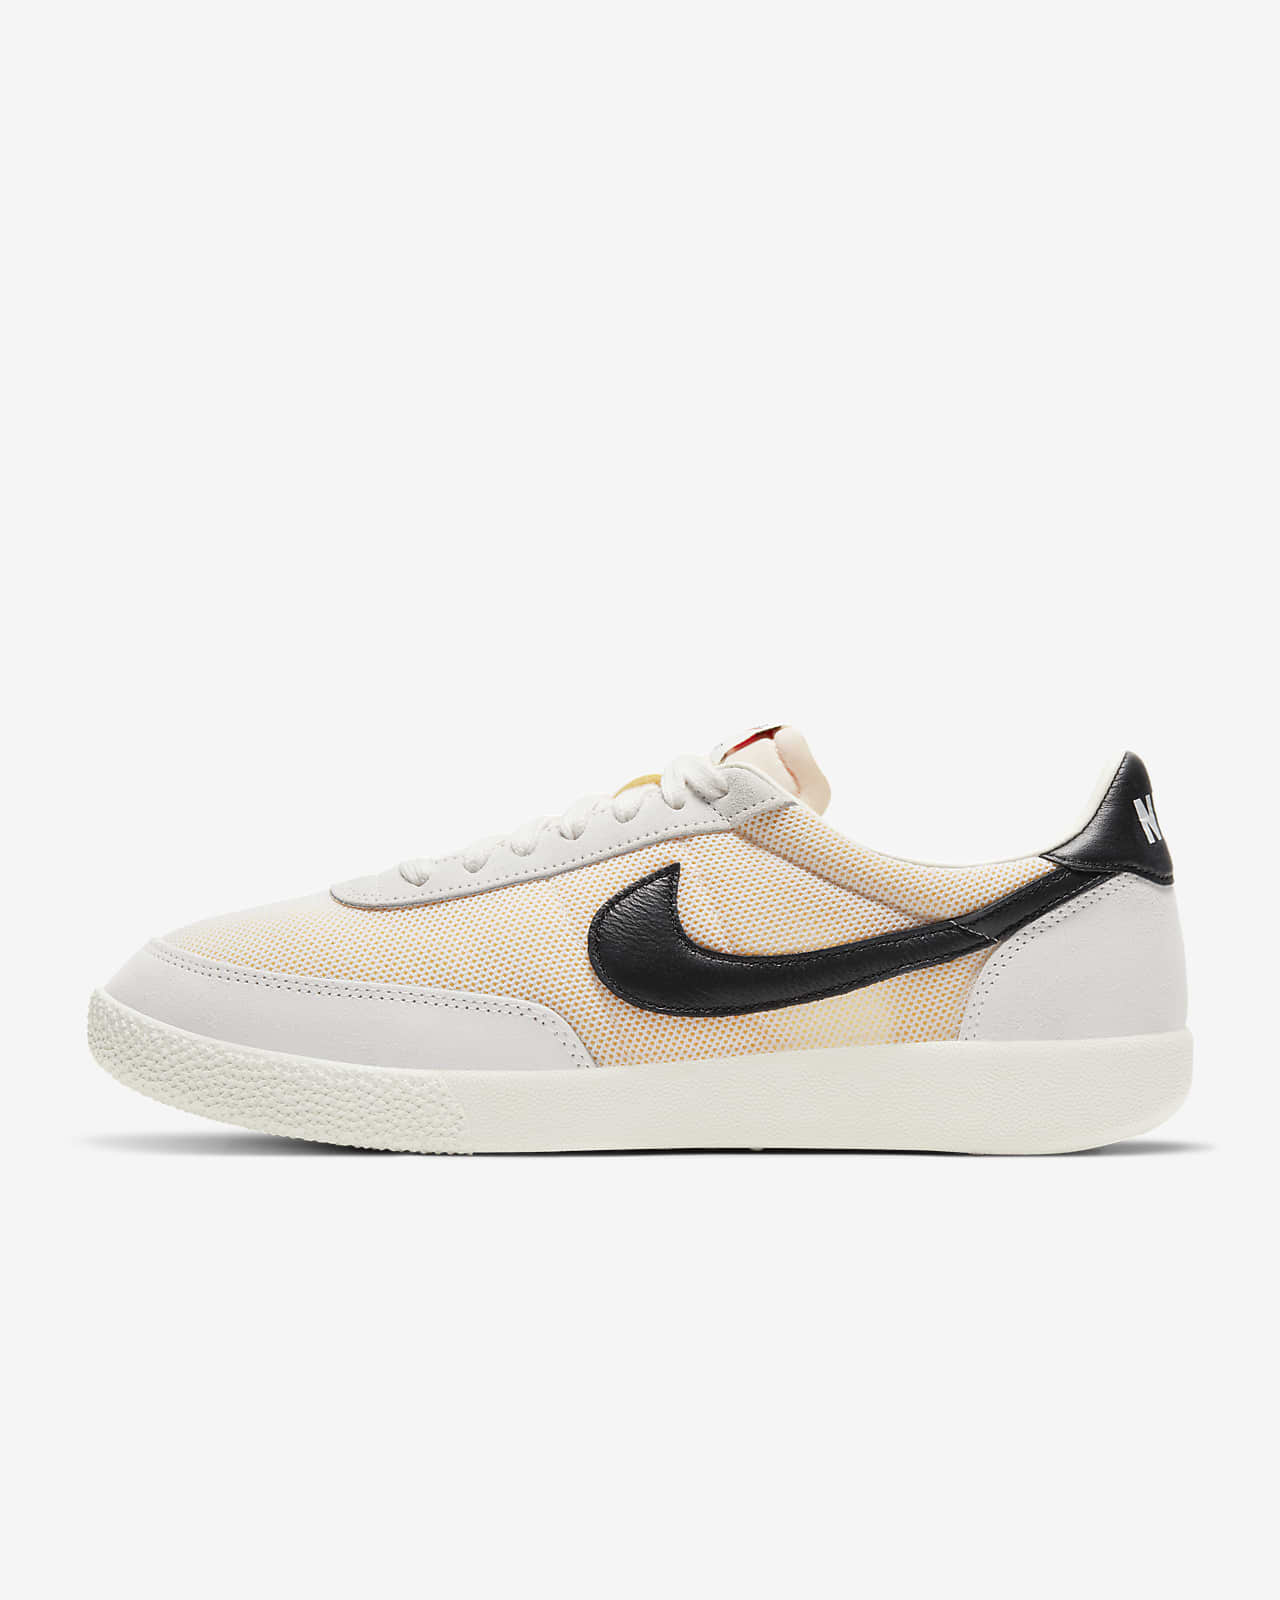 Nike Killshot OG Men's Shoe